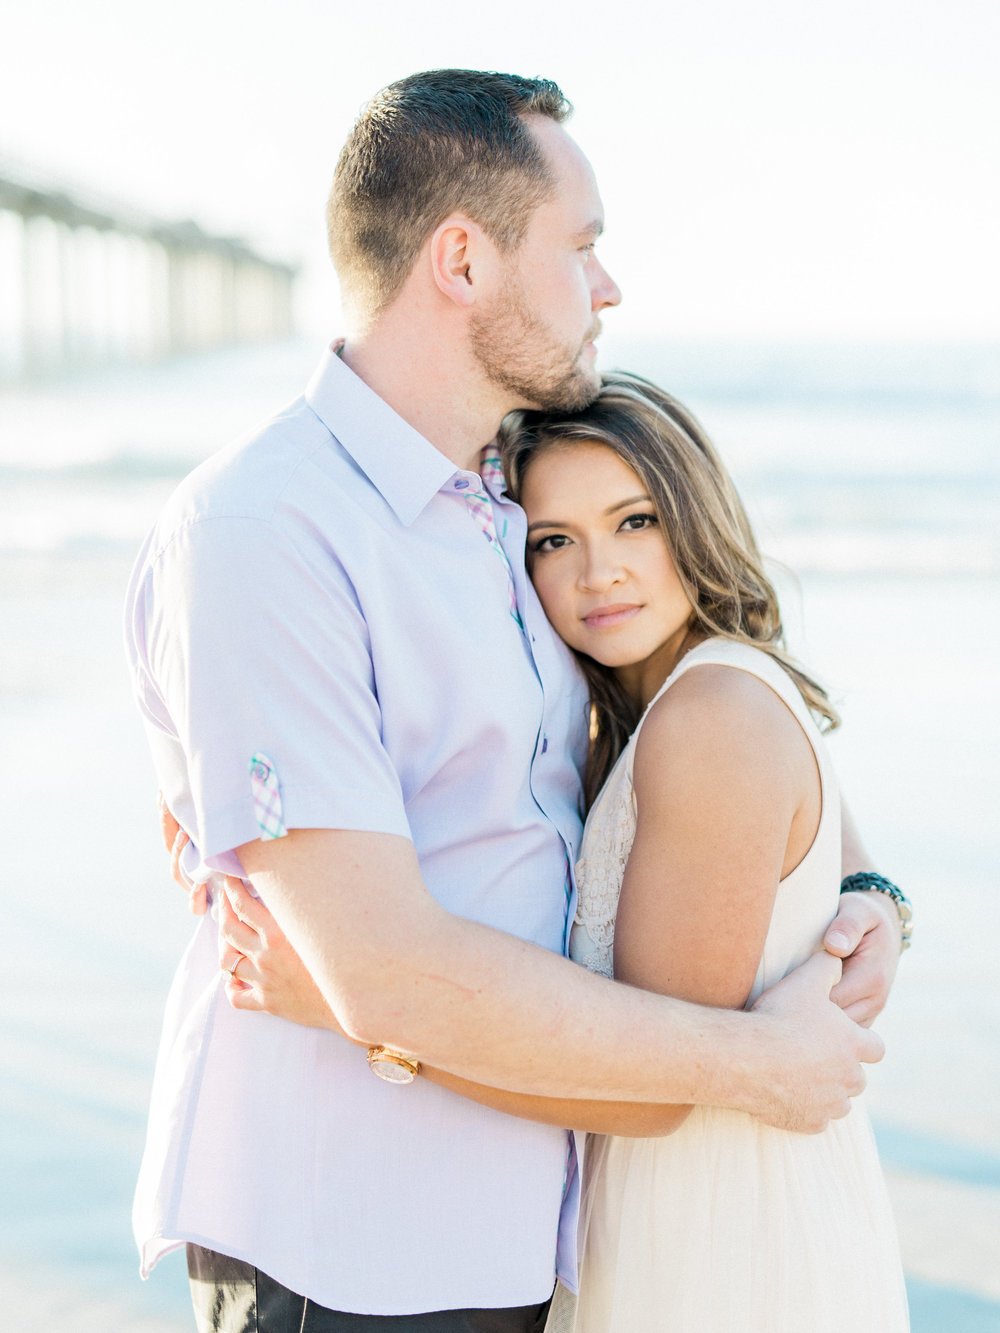 La Jolla Engagement photography | San diego photographer | Whiskers and Willow Photography